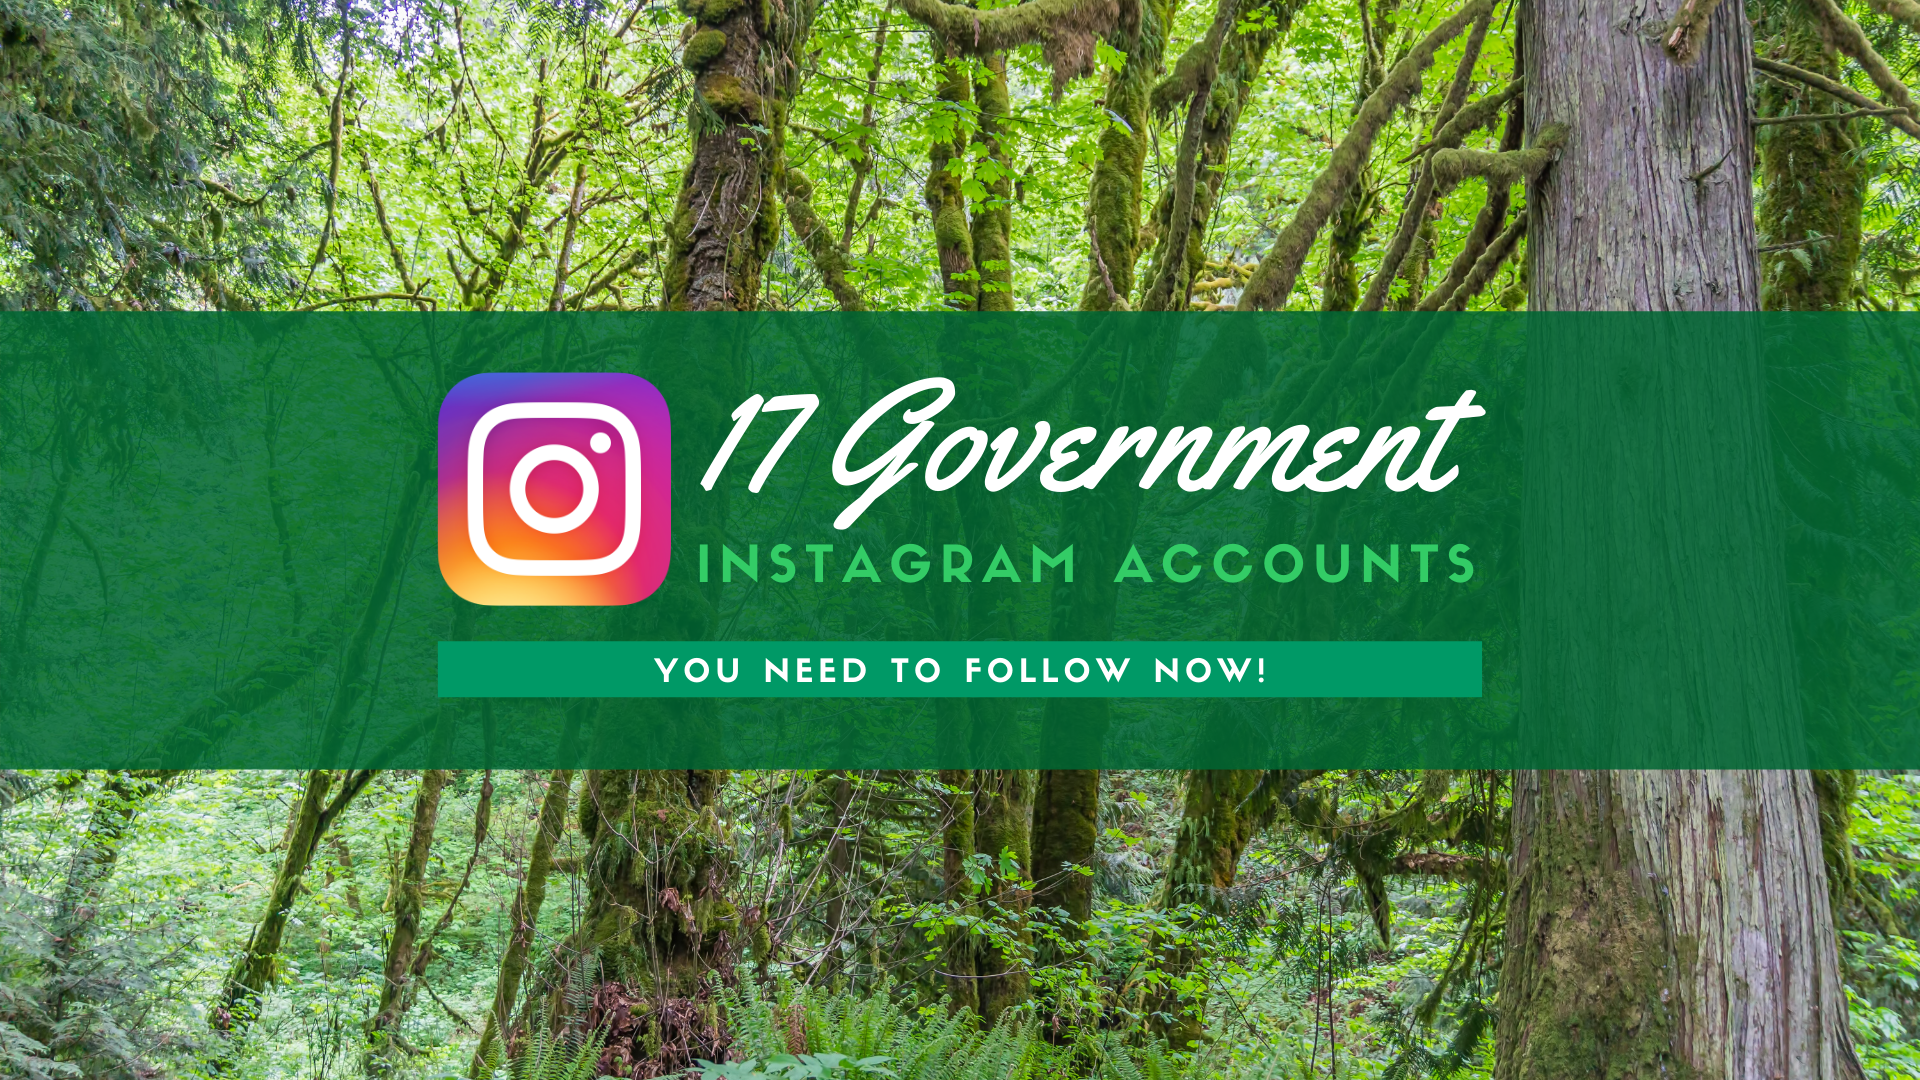 17 Government Instagram Accounts You Need to Follow Now